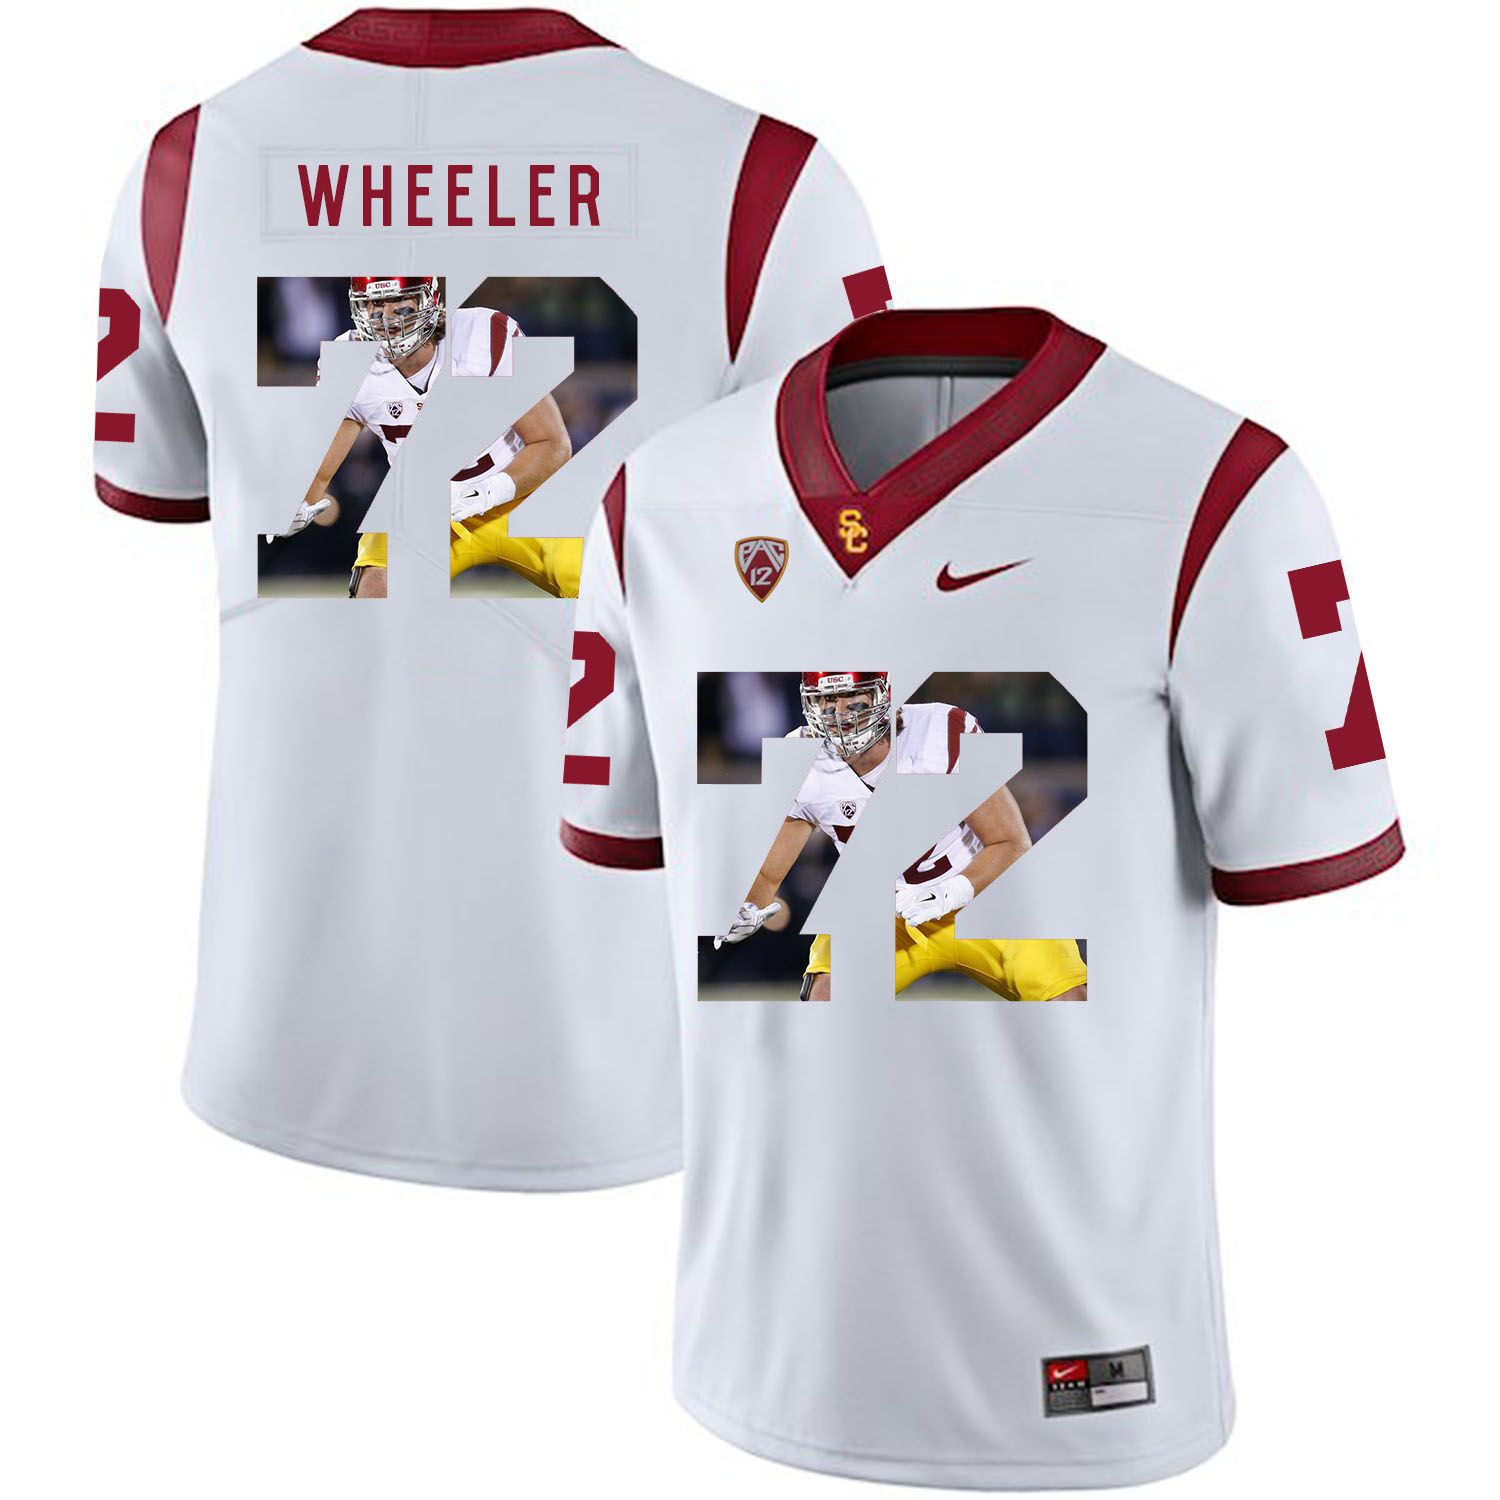 Men USC Trojans 72 Wheeler White Fashion Edition Customized NCAA Jerseys